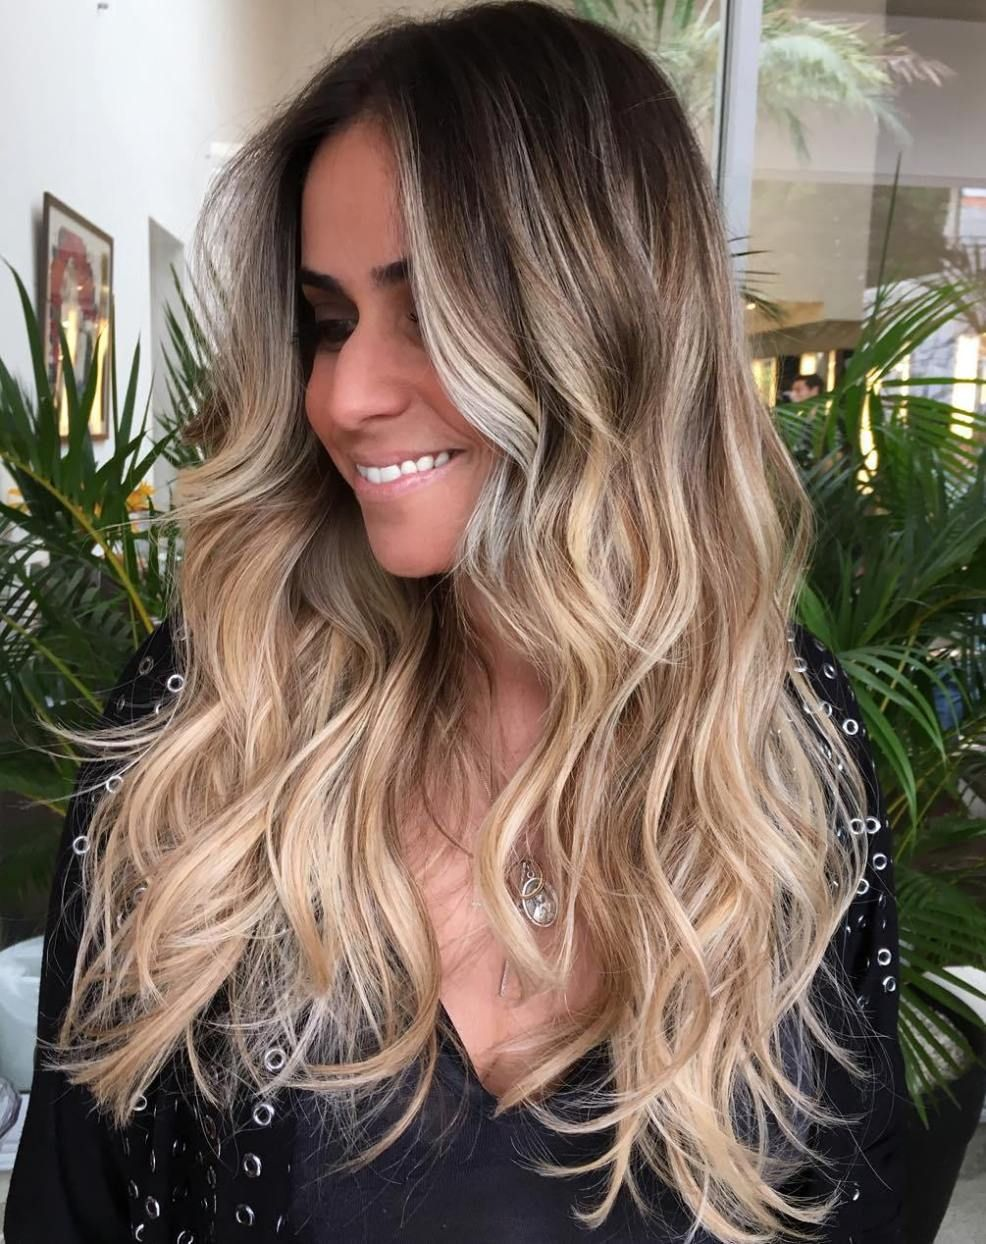 20 perfect ways to get beach waves in your hair | balayage